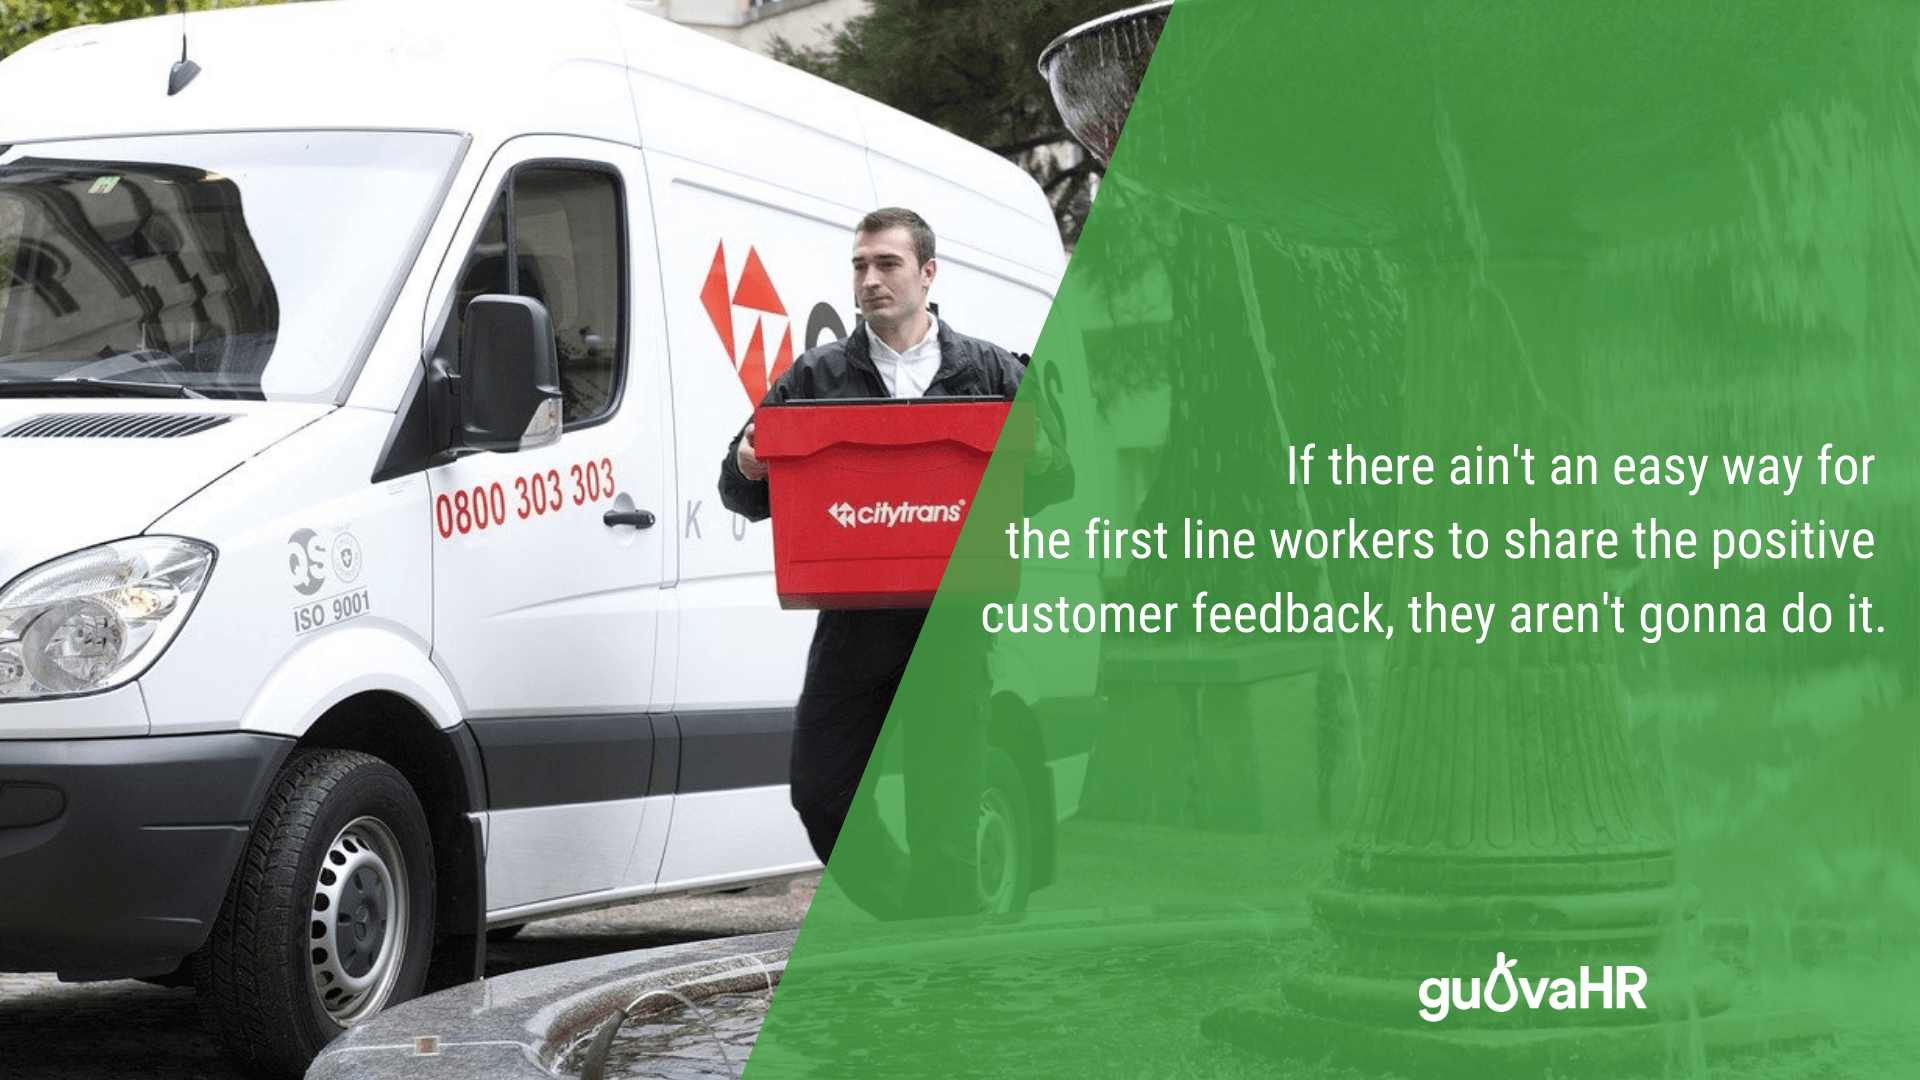 """Courier delivering a big parcel and an internal communication problem quote saying """"If there ain't an easy way for the first line workers to share the positive customer feedback, they aren't gonna do it."""""""